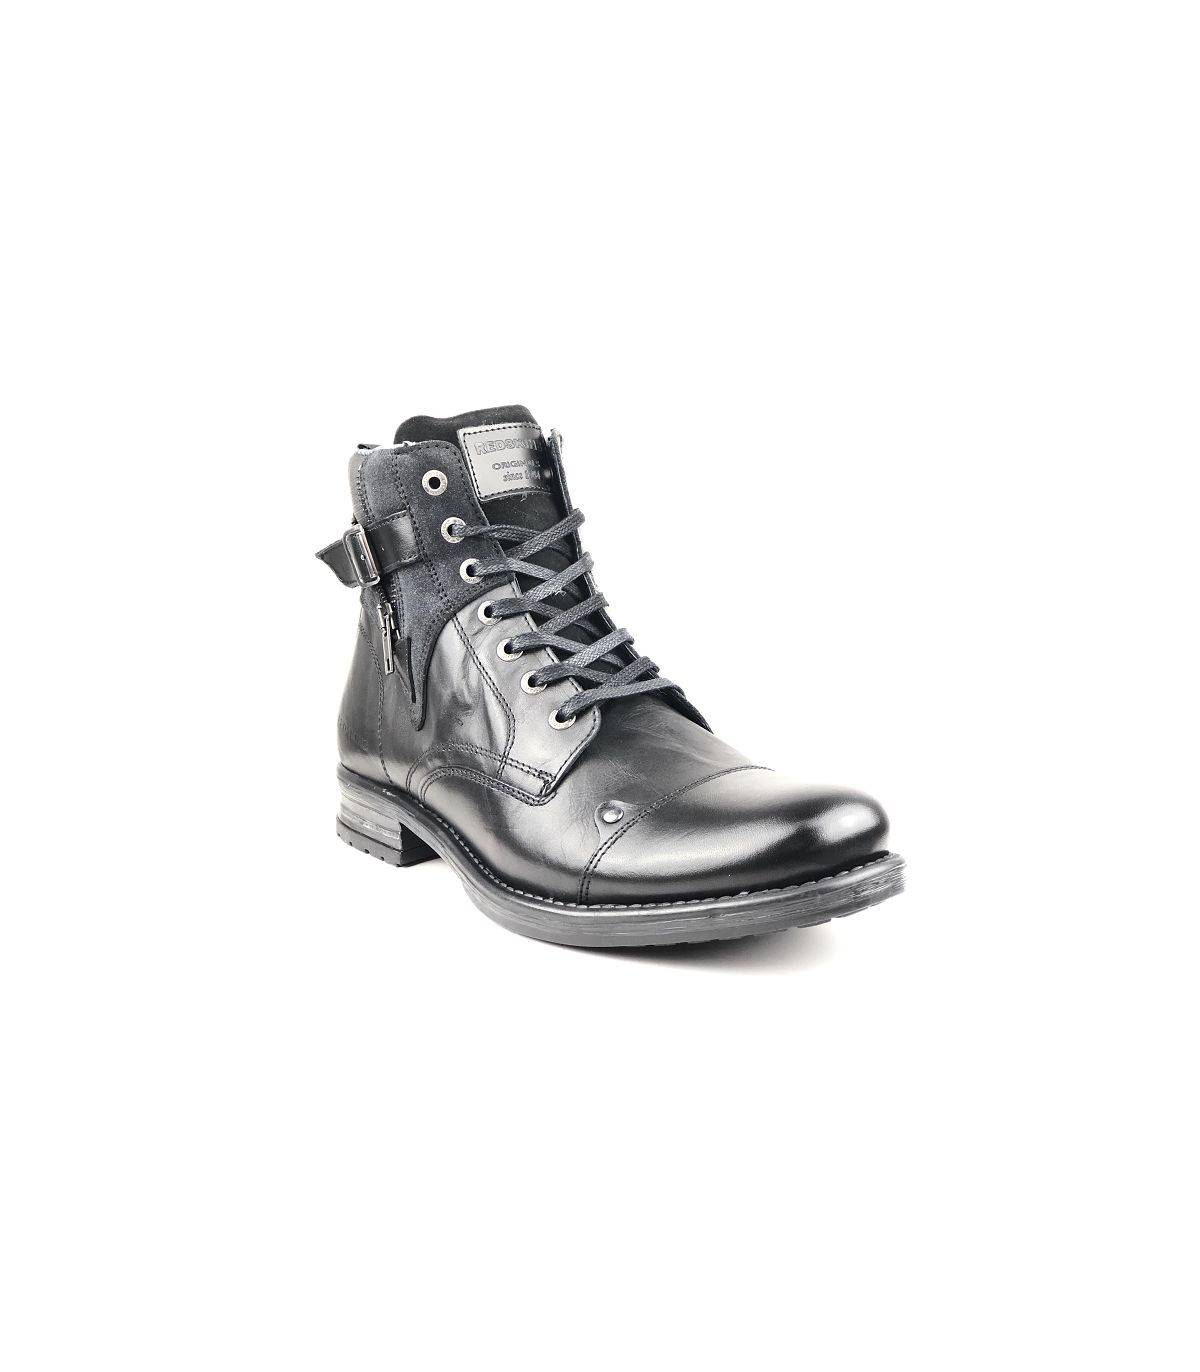 Yero Cuir NoirUnivers Homme Redskins chaussures Chaussures xtsdQCrBh